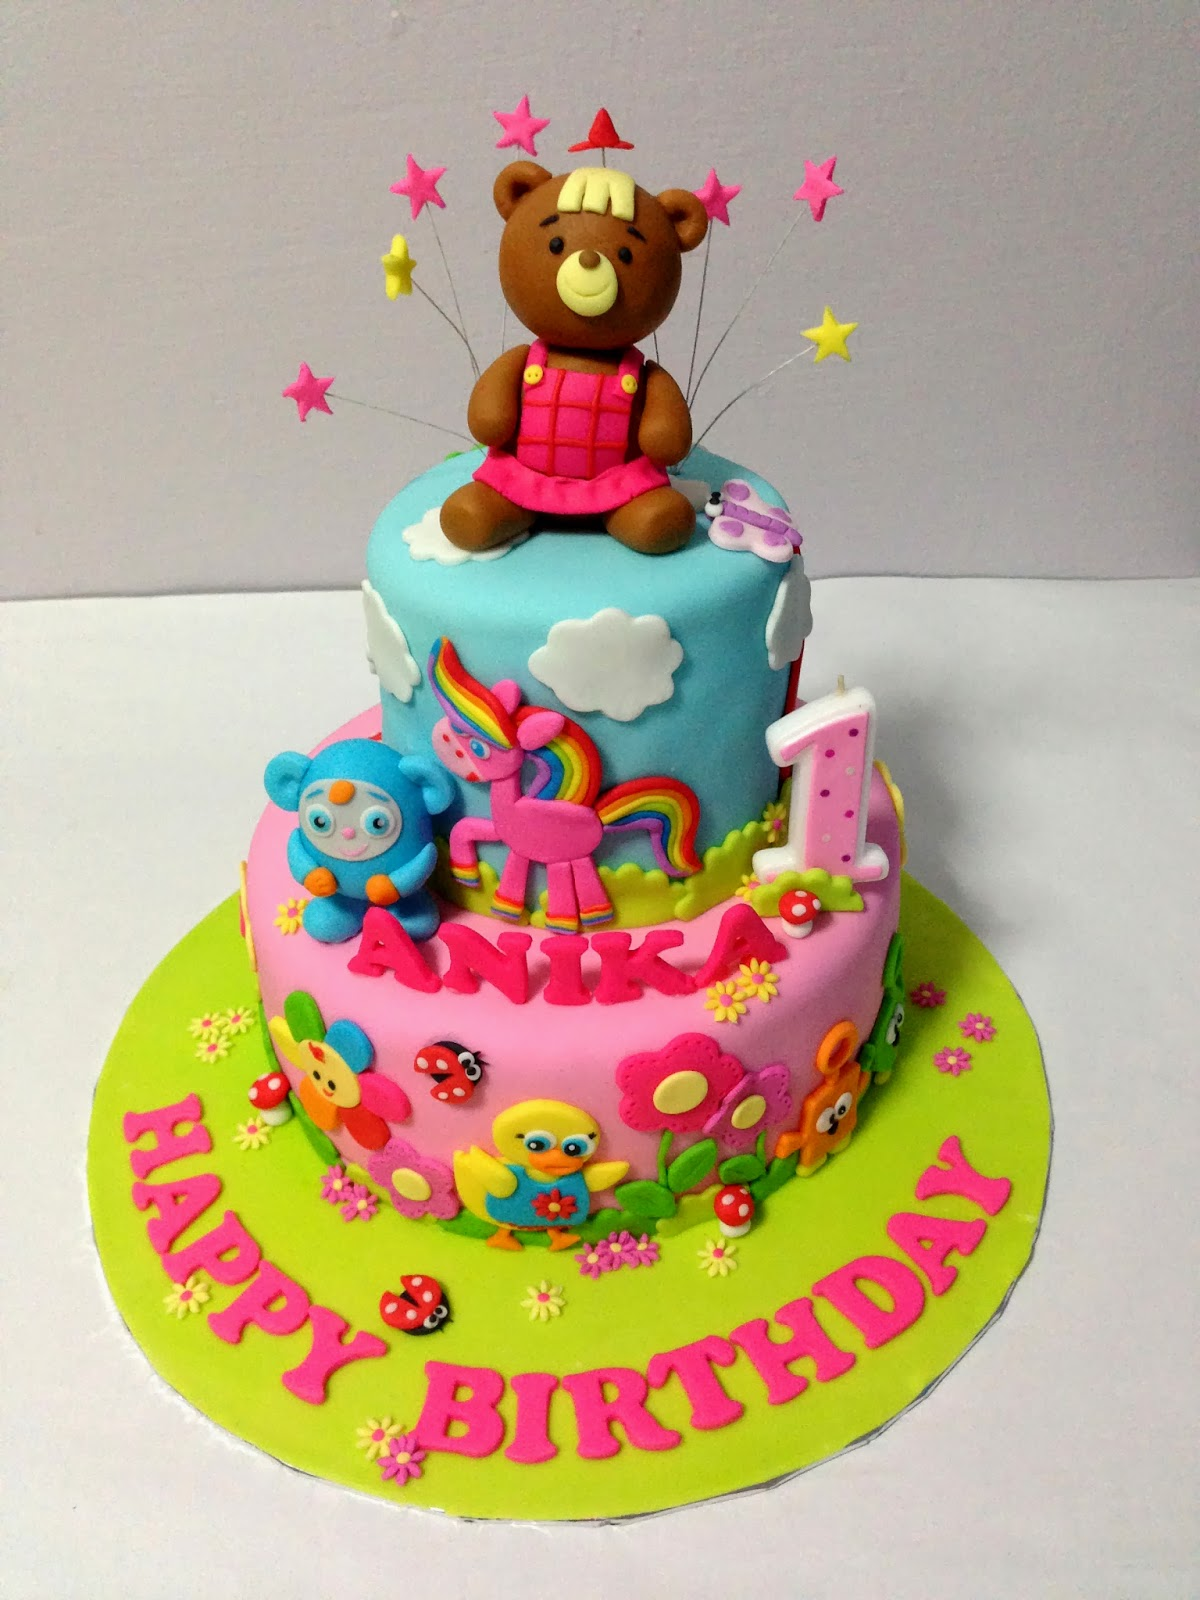 Oven creations happy 1st birthday anika baby first tv cake with anikas favourite bonnie bear as the main focus happy birthday anika publicscrutiny Gallery